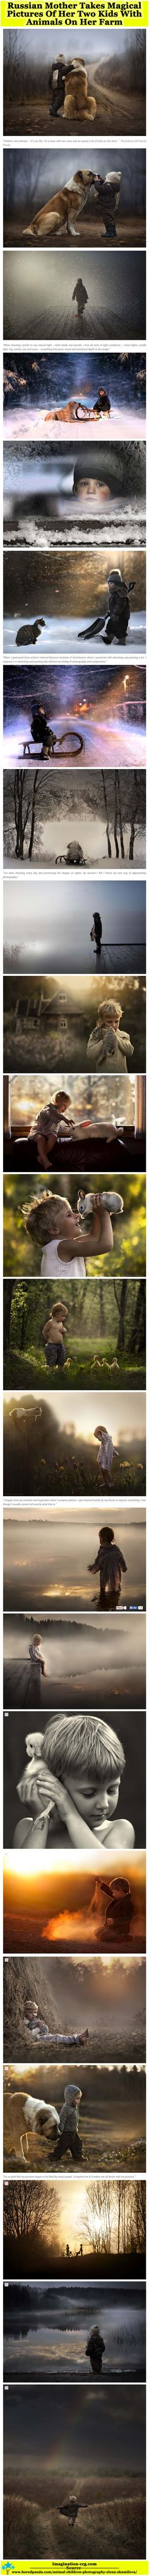 Russian Mother Takes Magical Pictures Of Her Two Kids With Animals On Her Farm